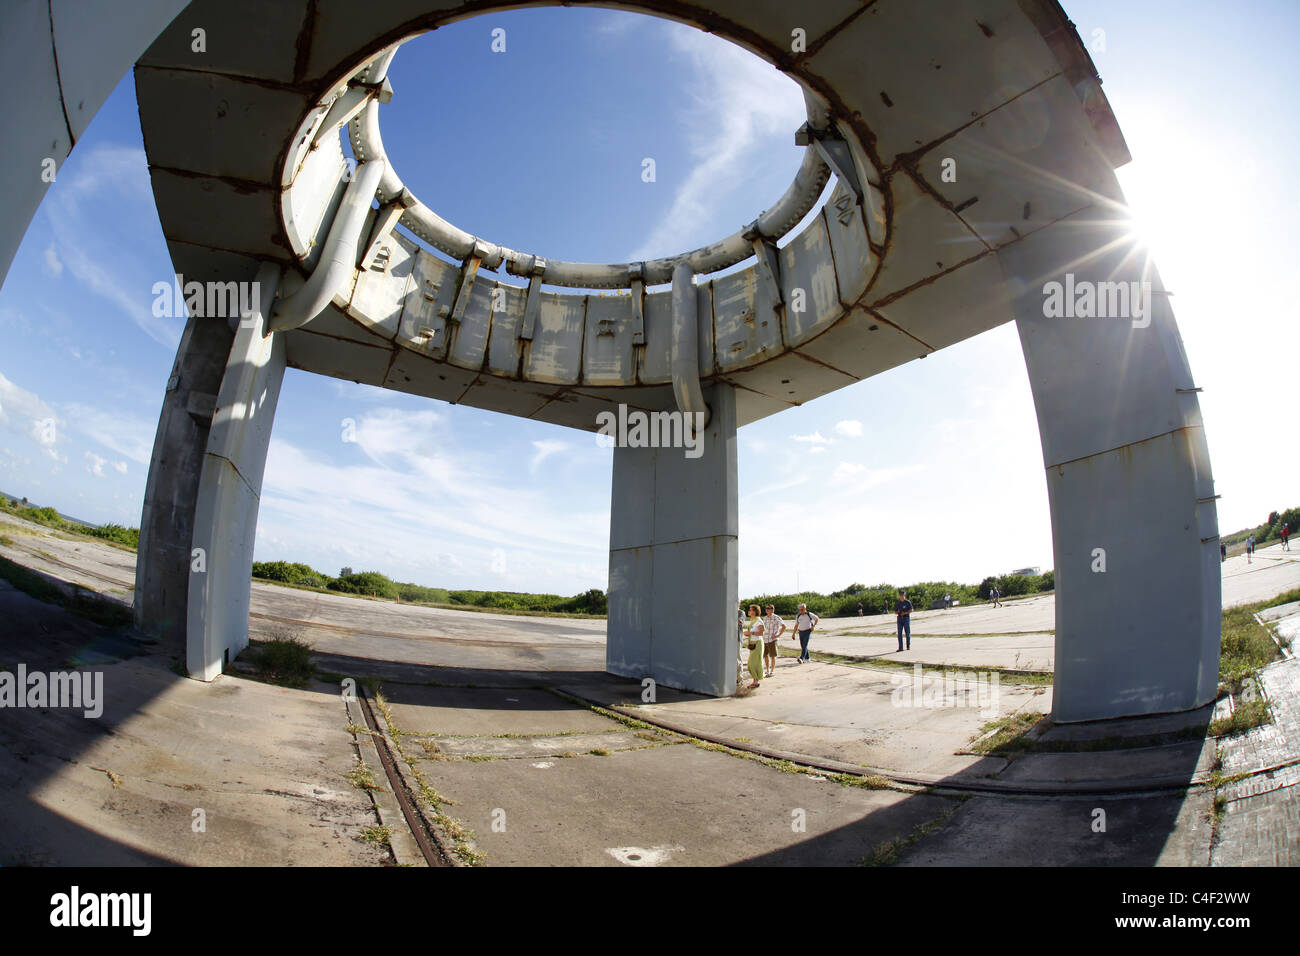 The Launch Pad 34 where  all three crew members of Apollo 1 perished Virgil 'Gus' Grissom,  Edward H. White - Stock Image